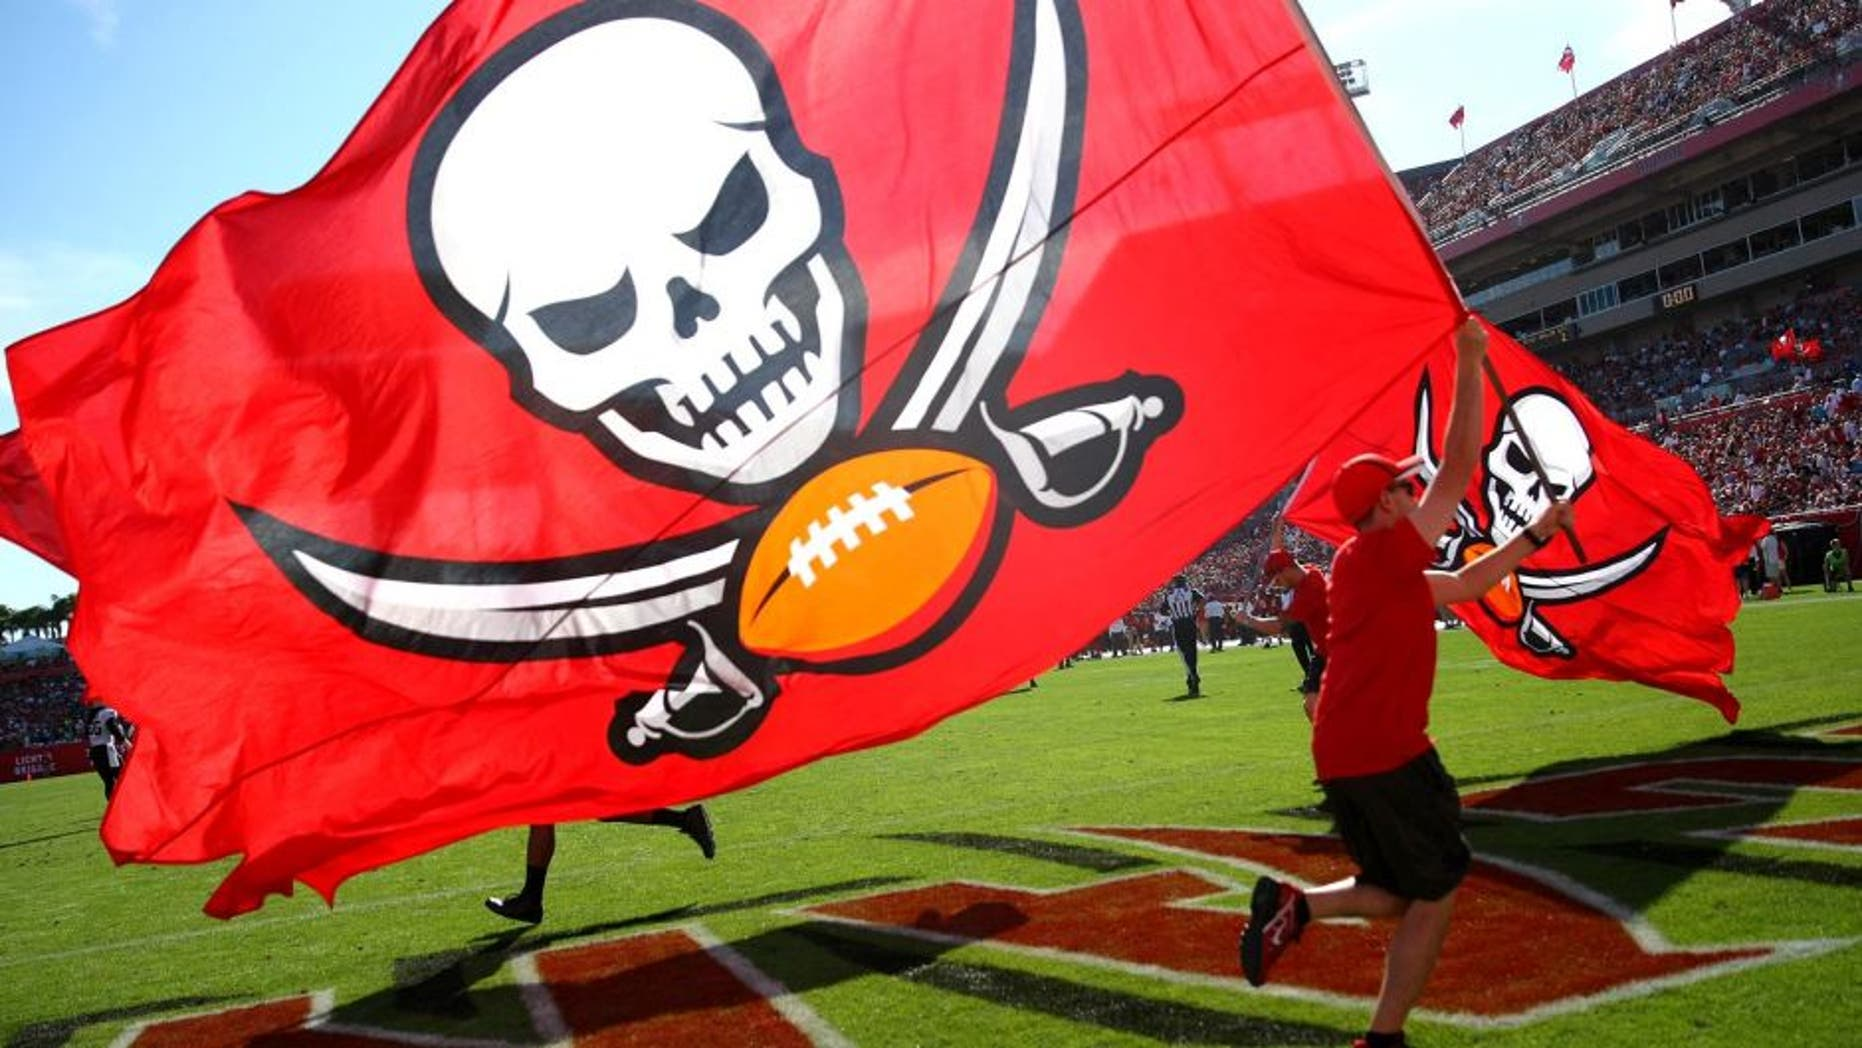 TAMPA, FL - DECEMBER 28: A Buccaneer pirate flag is flown after a touchdown score during an NFL football game between the New Orleans Saints and the Tampa Bay Buccaneers at Raymond James Stadium on December 28, 2014 in Tampa, Florida. (Photo by Alex Menendez/Getty Images)